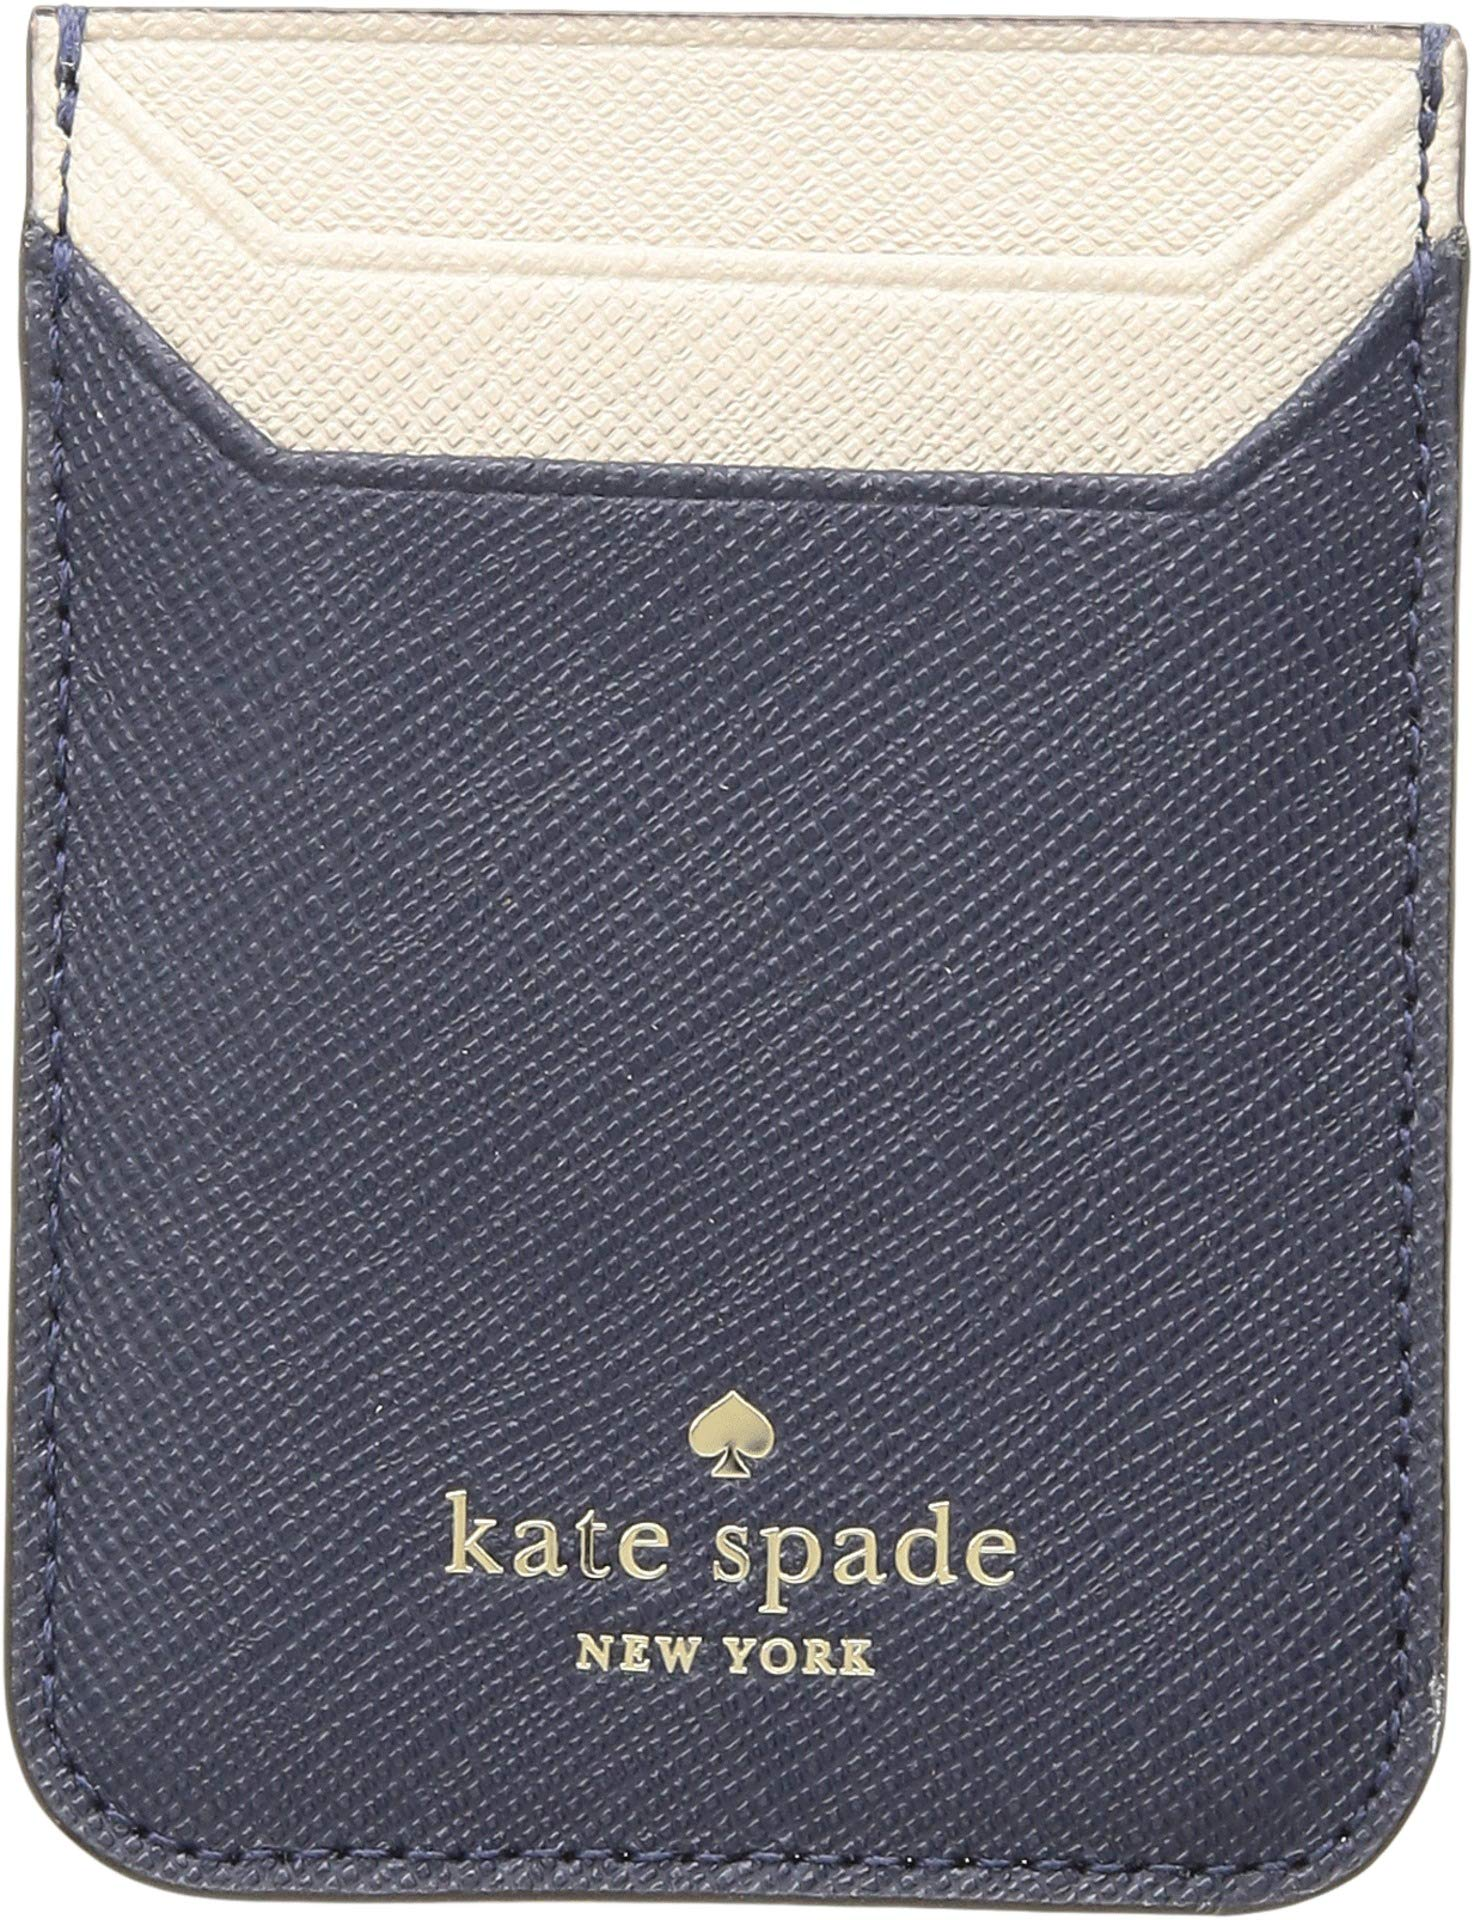 Kate Spade New York Women's Triple Sticker Pocket Blazer Blue/Tusk One Size